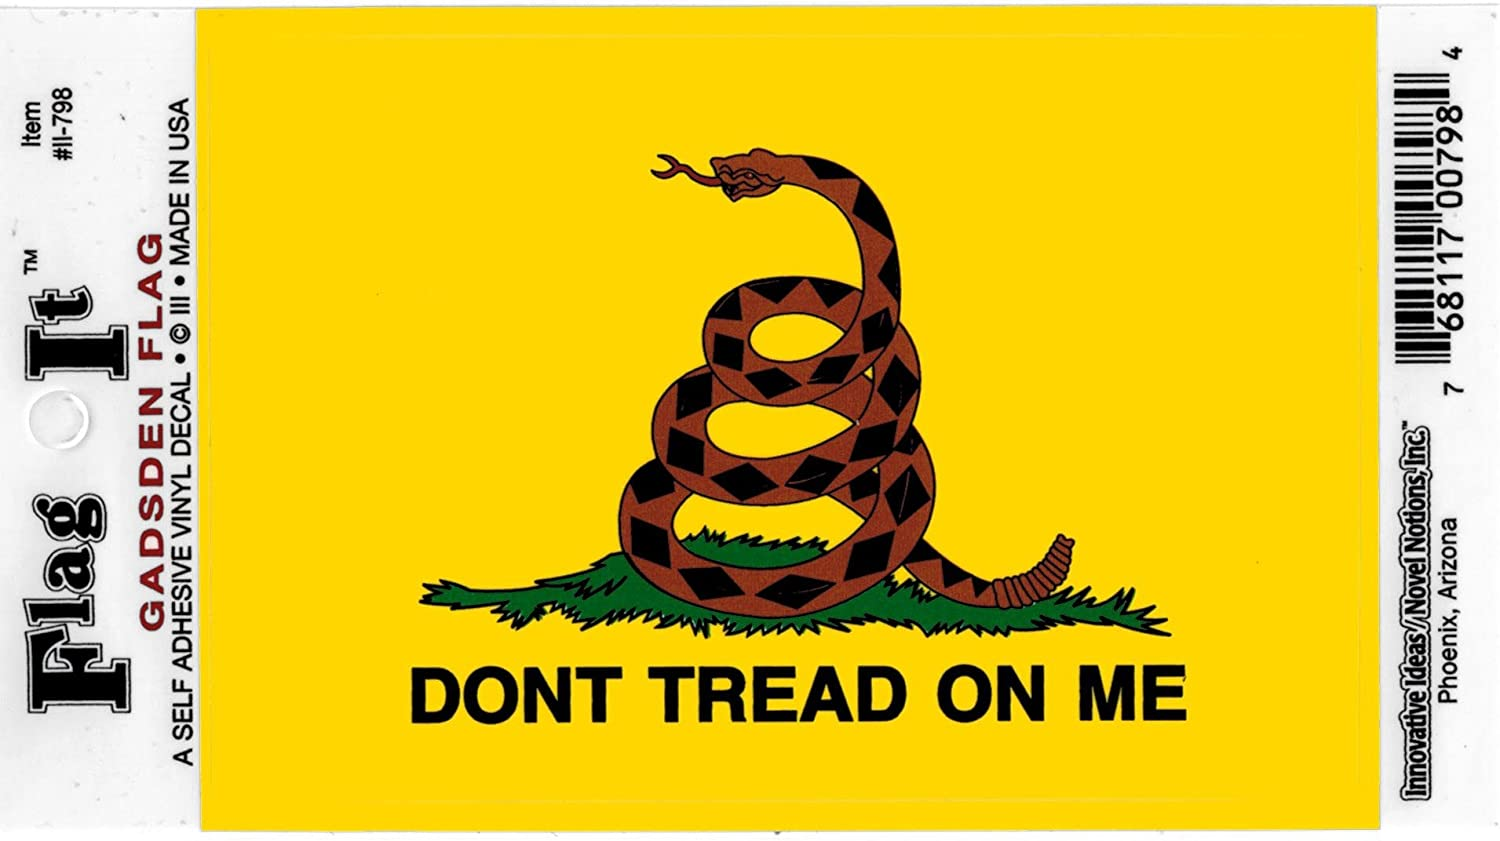 High Gloss Sticker DECAL Innovative Ideas 798 3.5 x 5 Dont Tread on Me Flag Decal